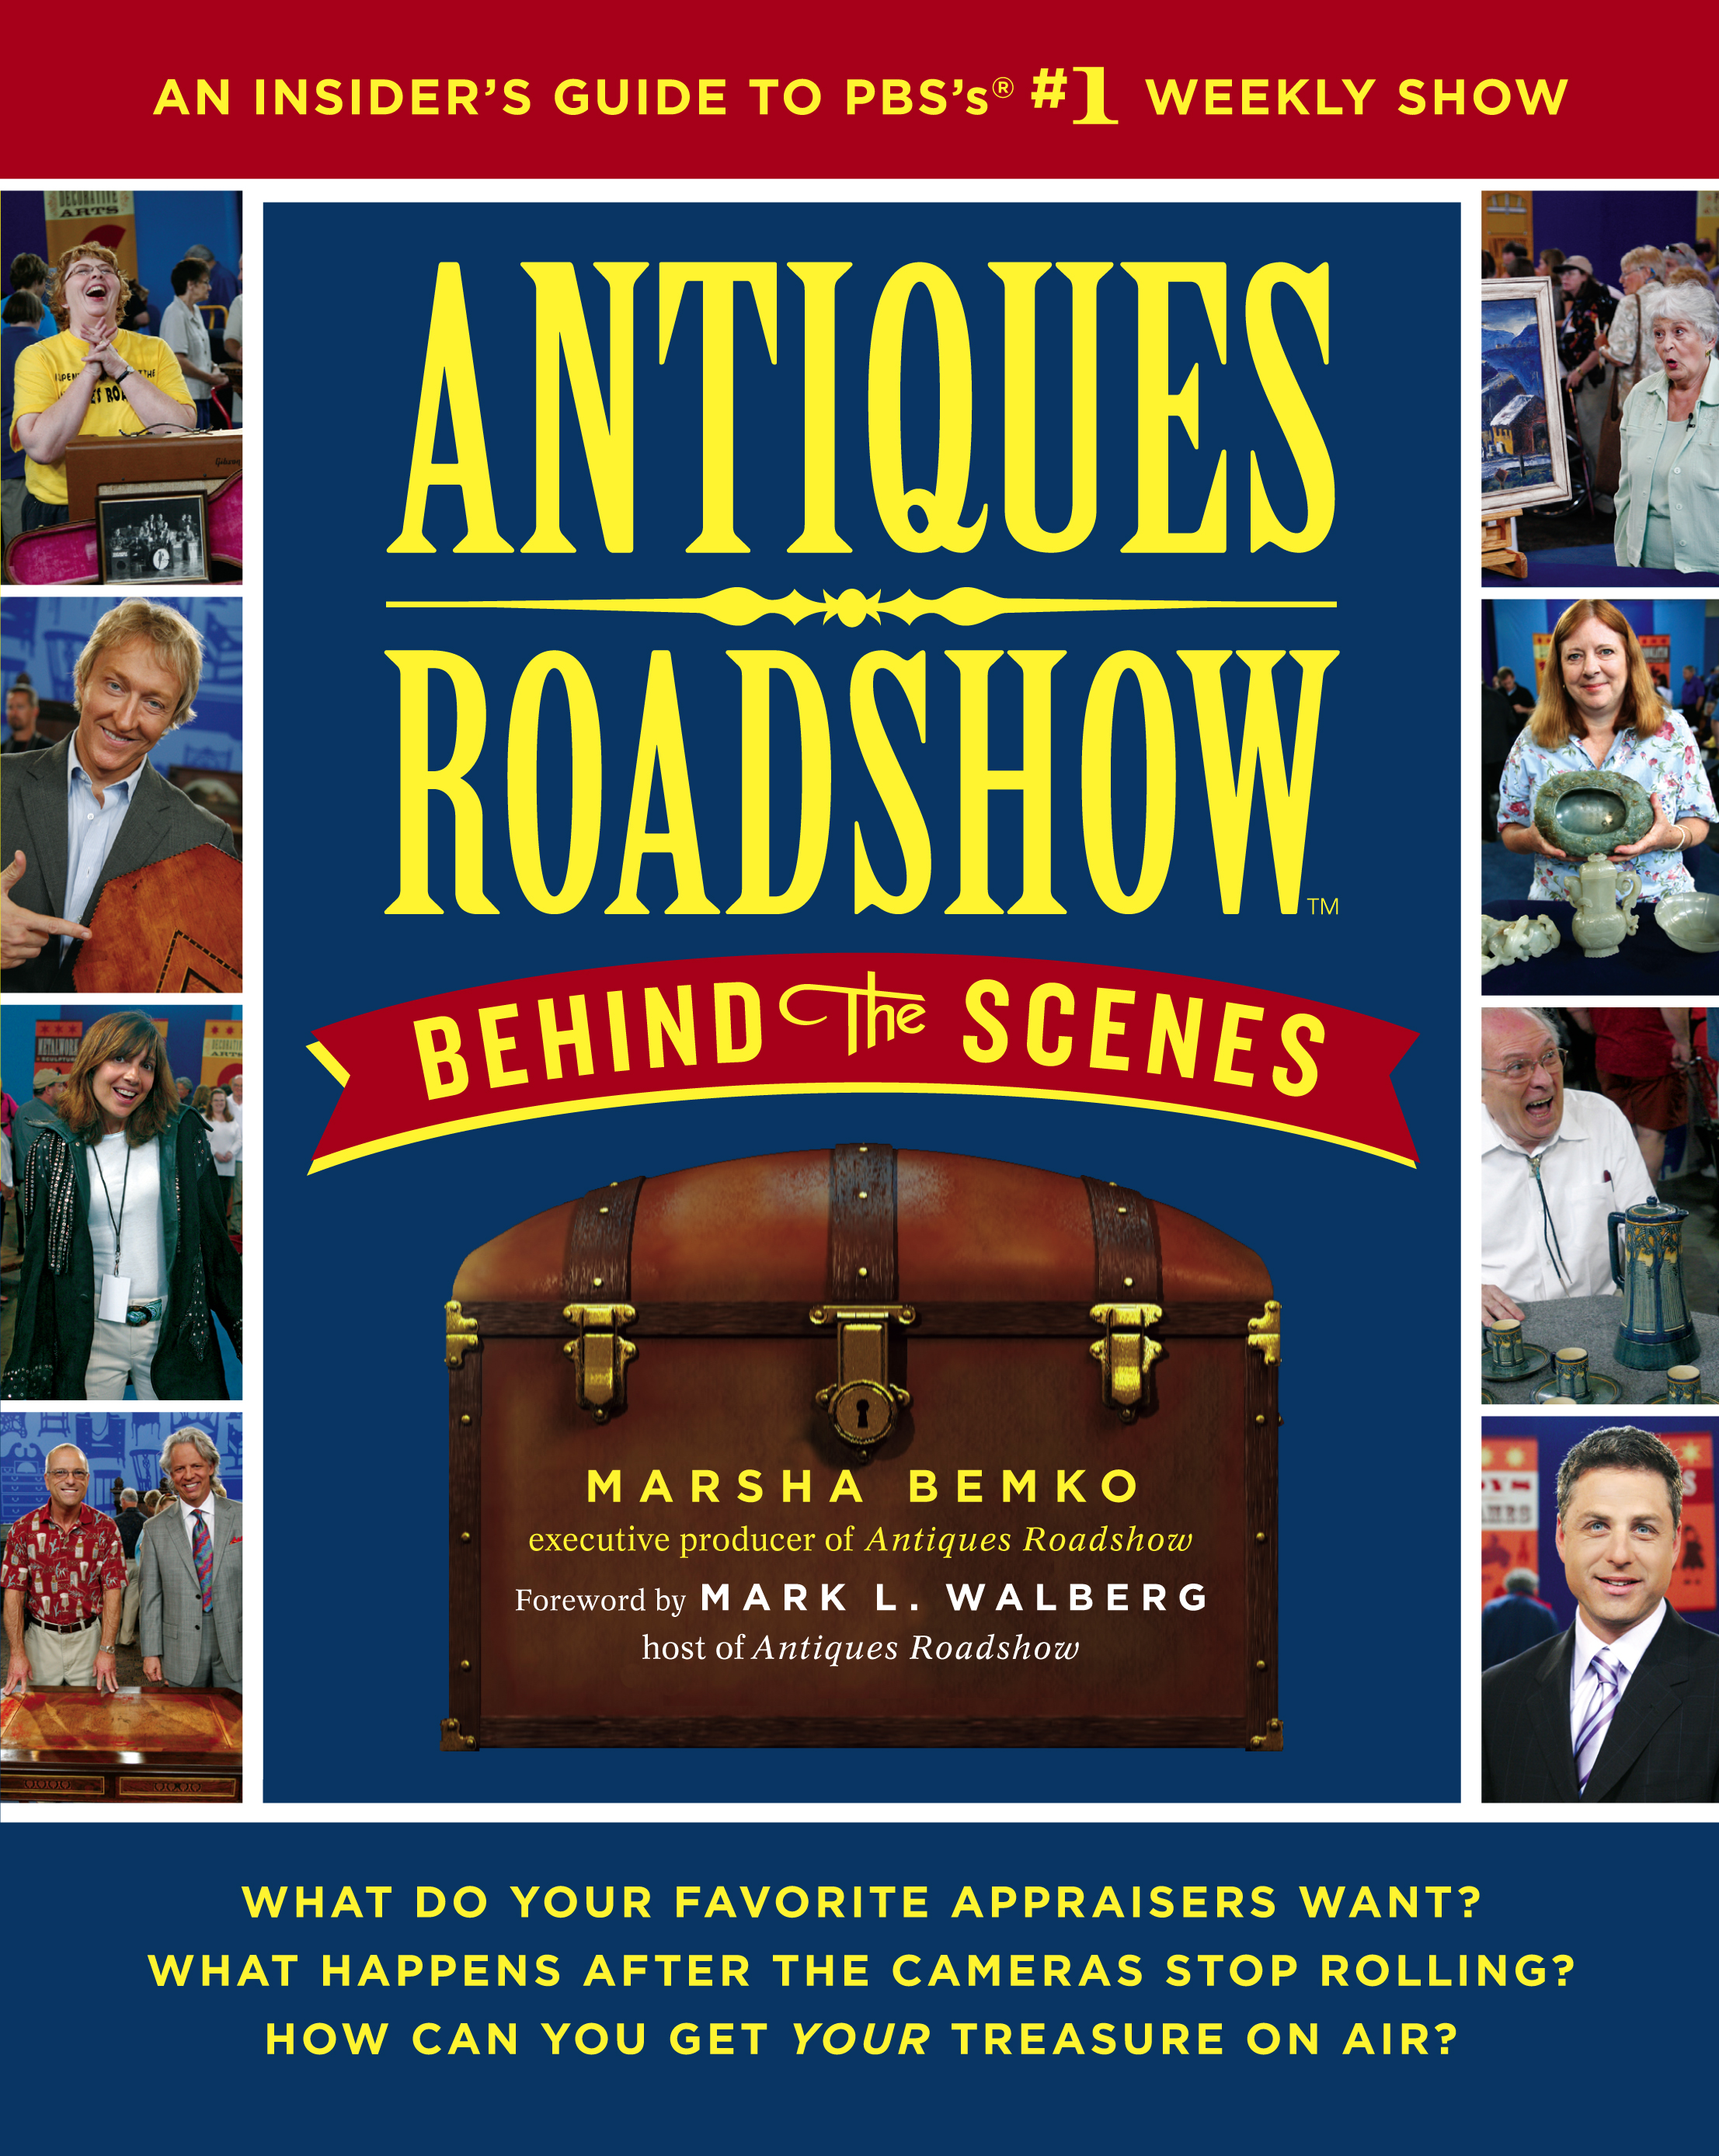 Show scenes page - An Insider S Guide To Pbs S 1 Weekly Show